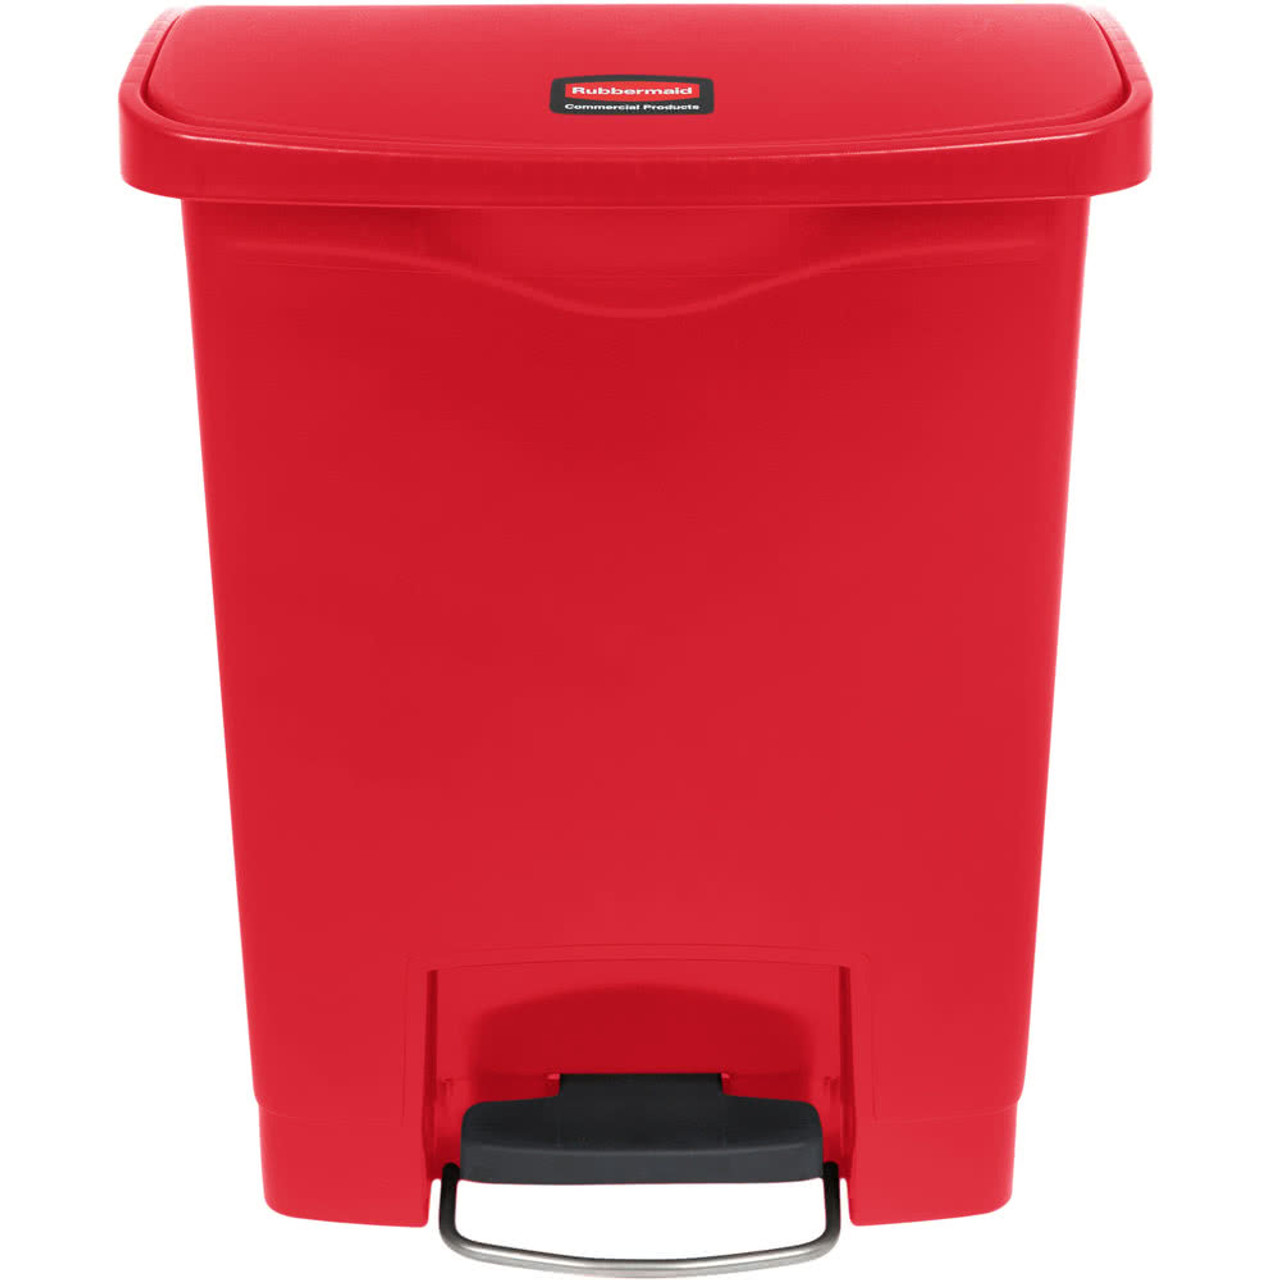 Rubbermaid Slim Jim 30L Resin Front Step Step-On Red - 1883564